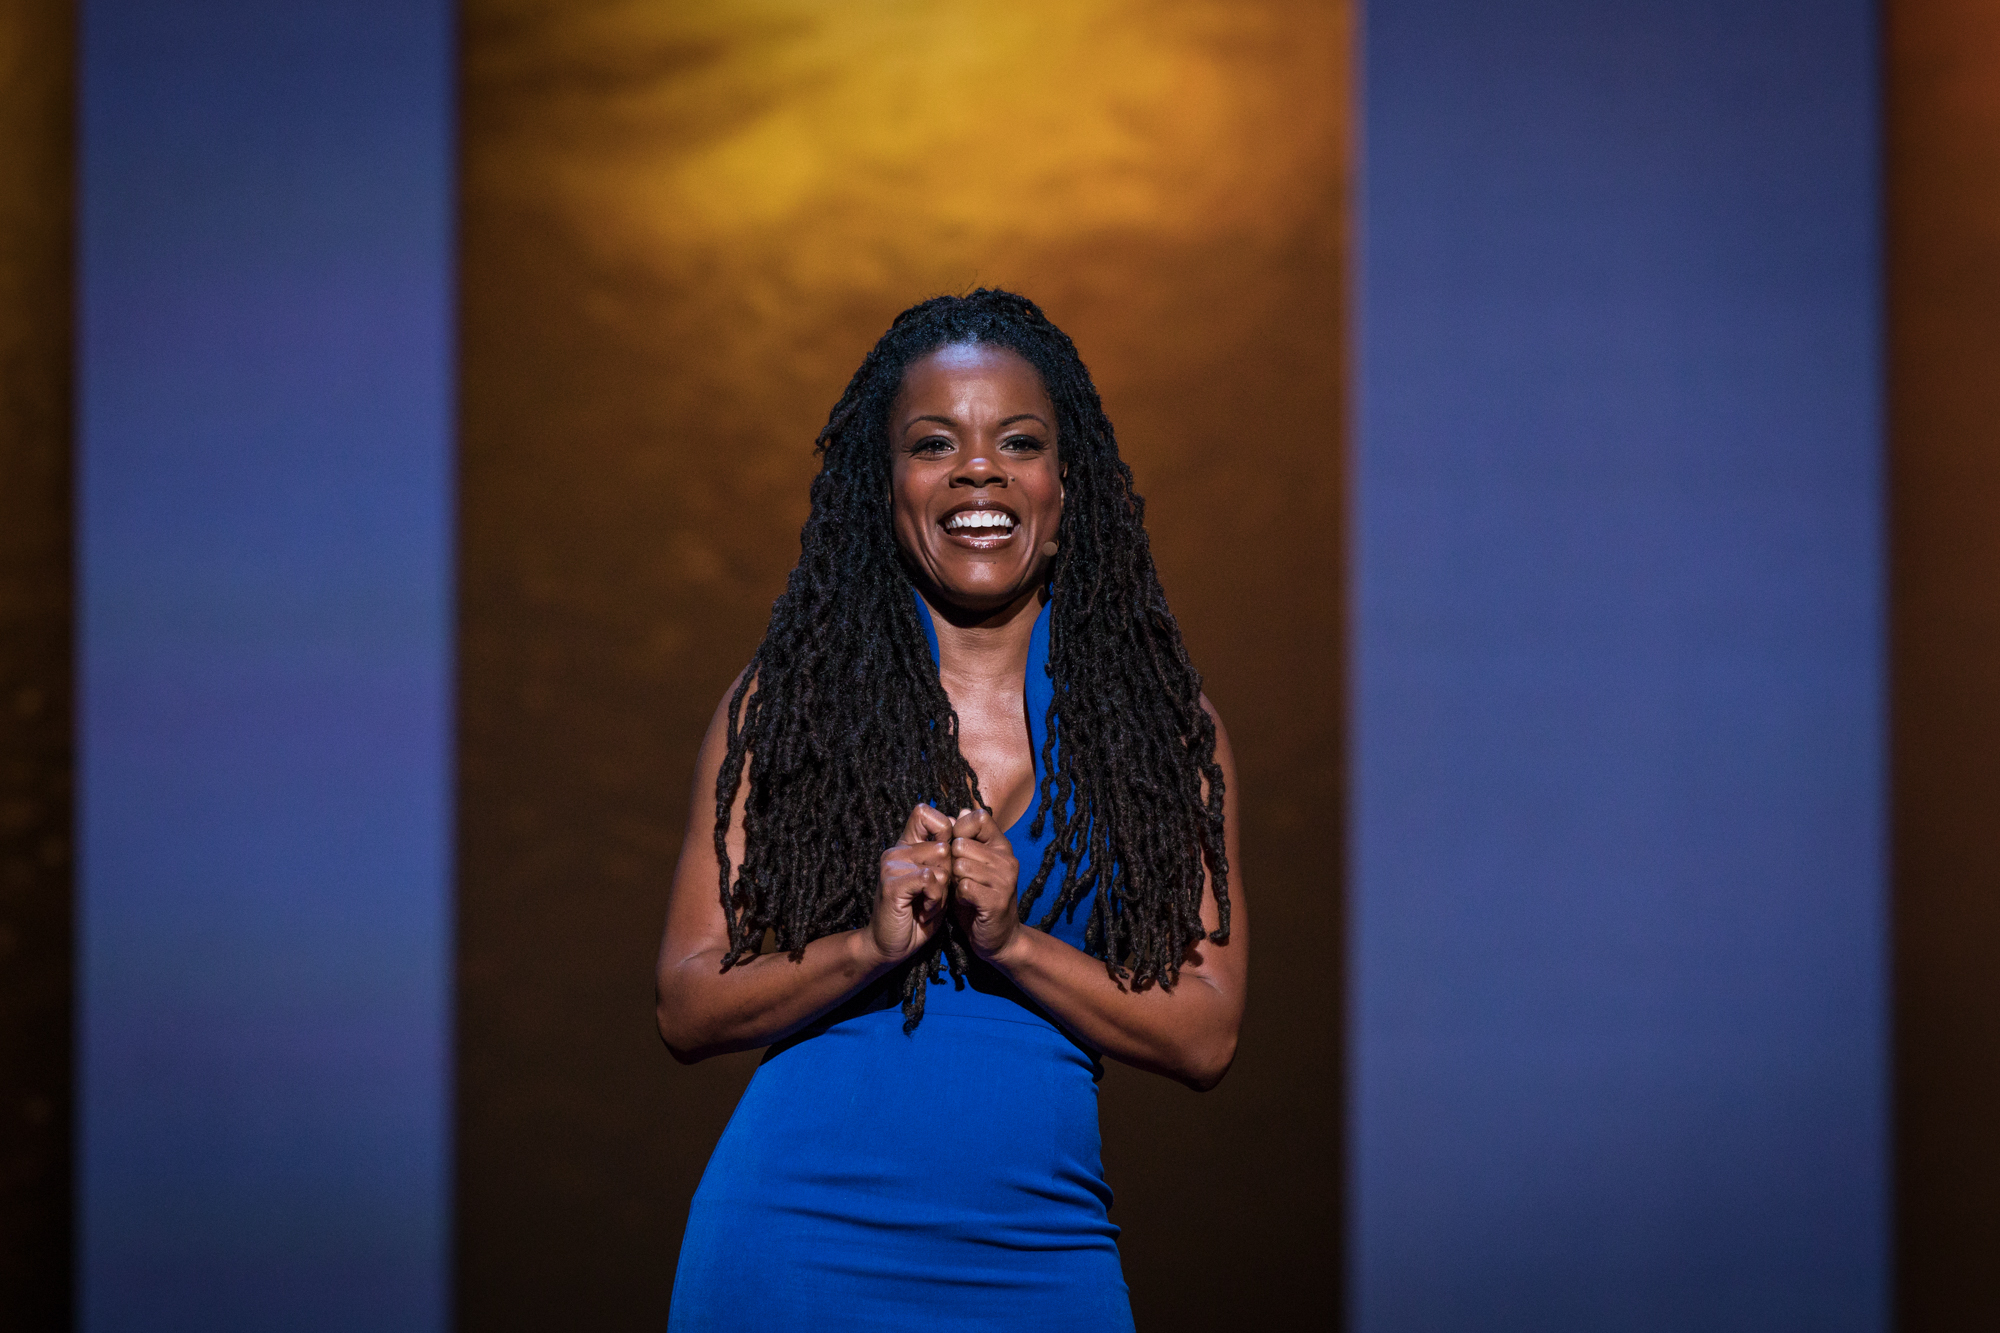 C. Nicole Mason at TEDWomen 2016 - It's About Time, October 26-28, 2016, Yerba Buena Centre for the Arts, San Francisco, California. Photo: Marla Aufmuth / TED